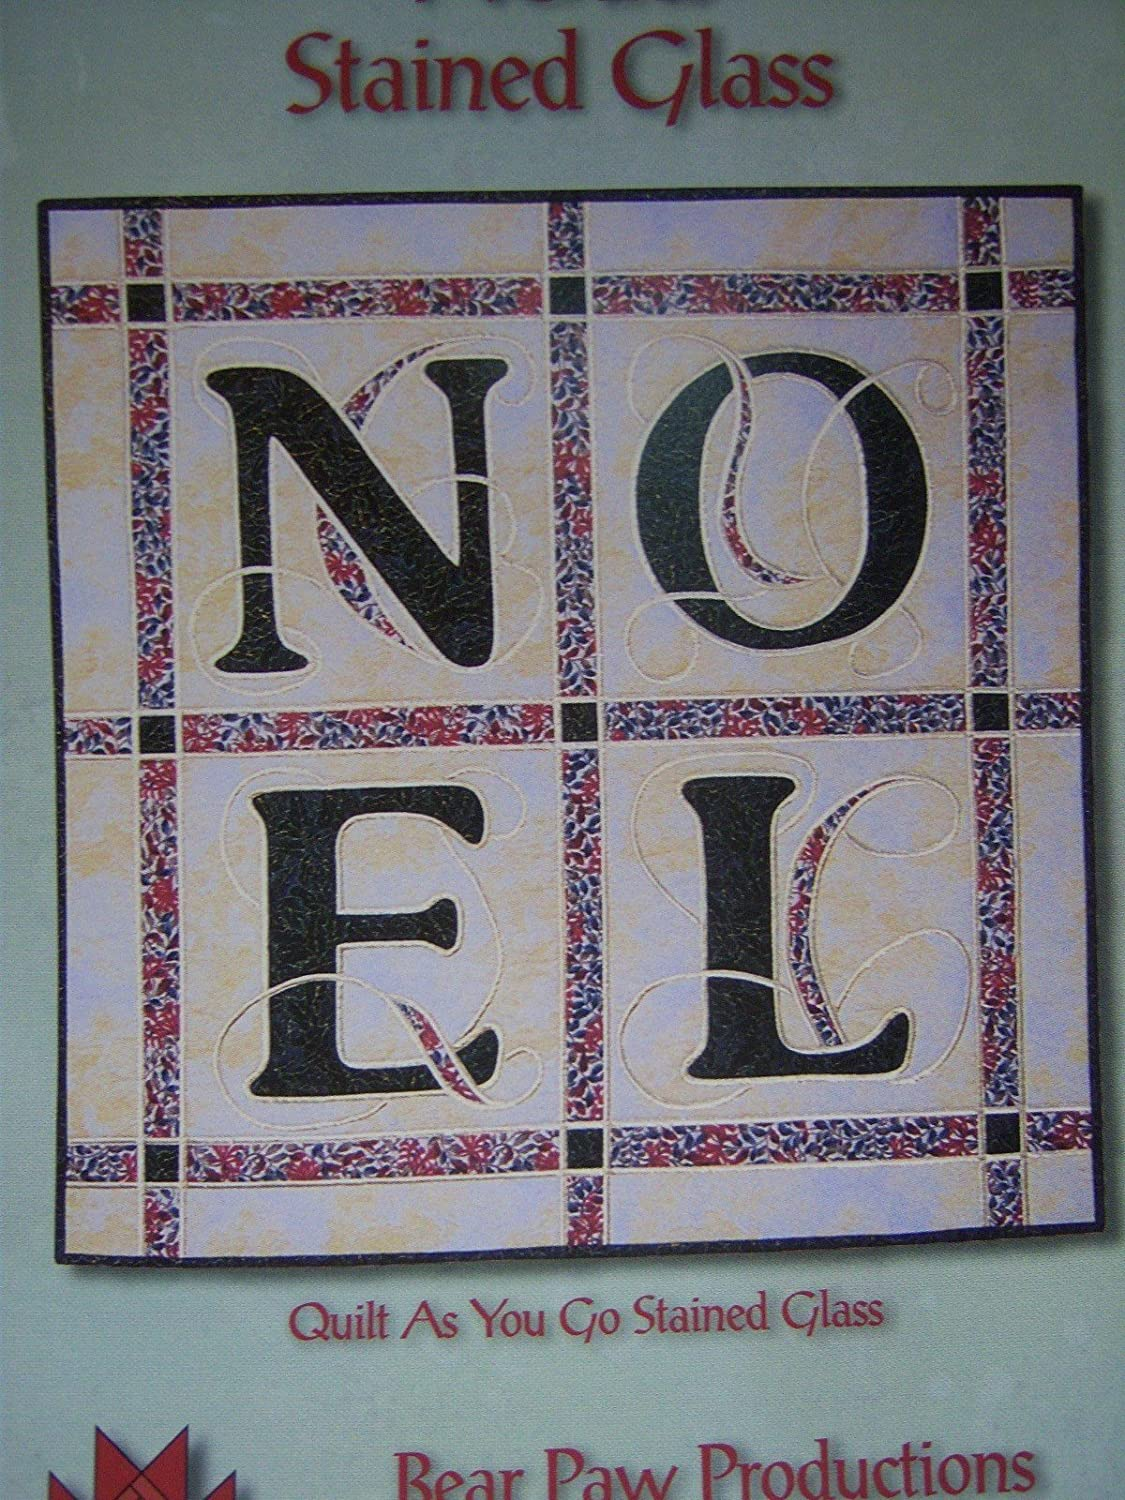 Noel Stained Glass - Quilt Pattern for Wallhanging - 33 x 33